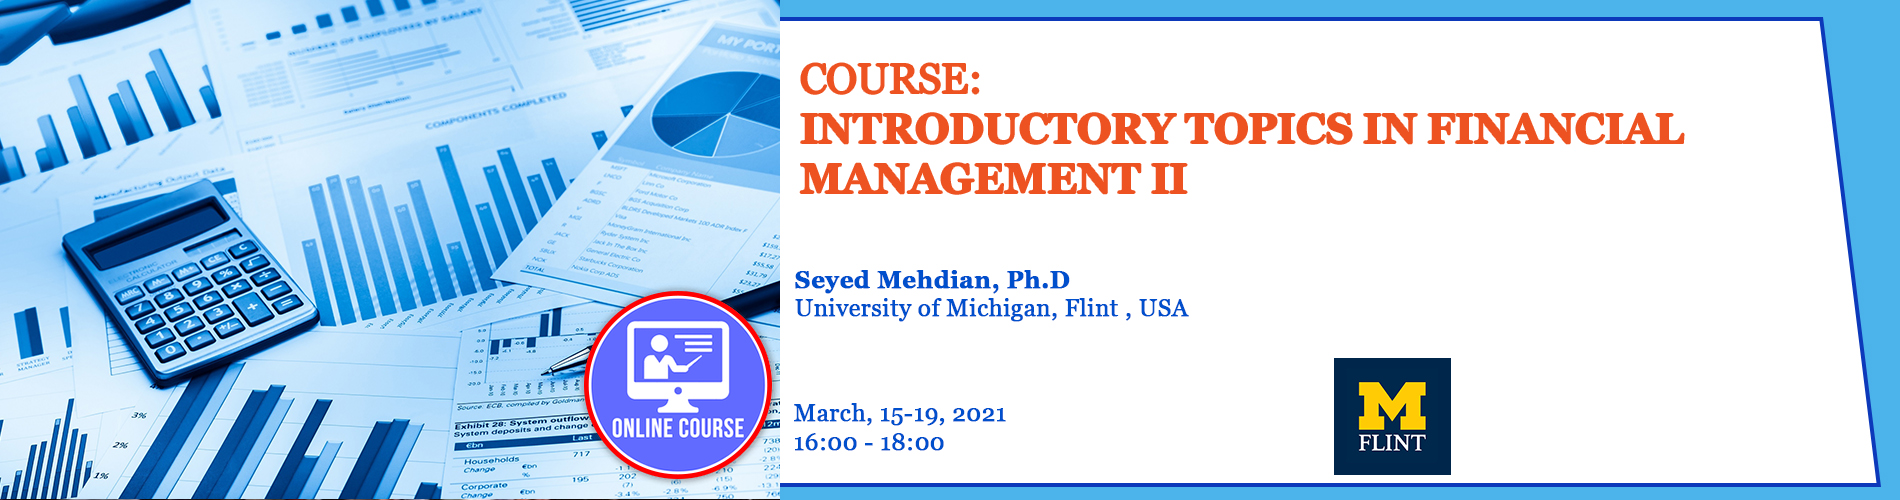 2021.03.15- 2021.03.19 - Introductory Topics in Financial Management II